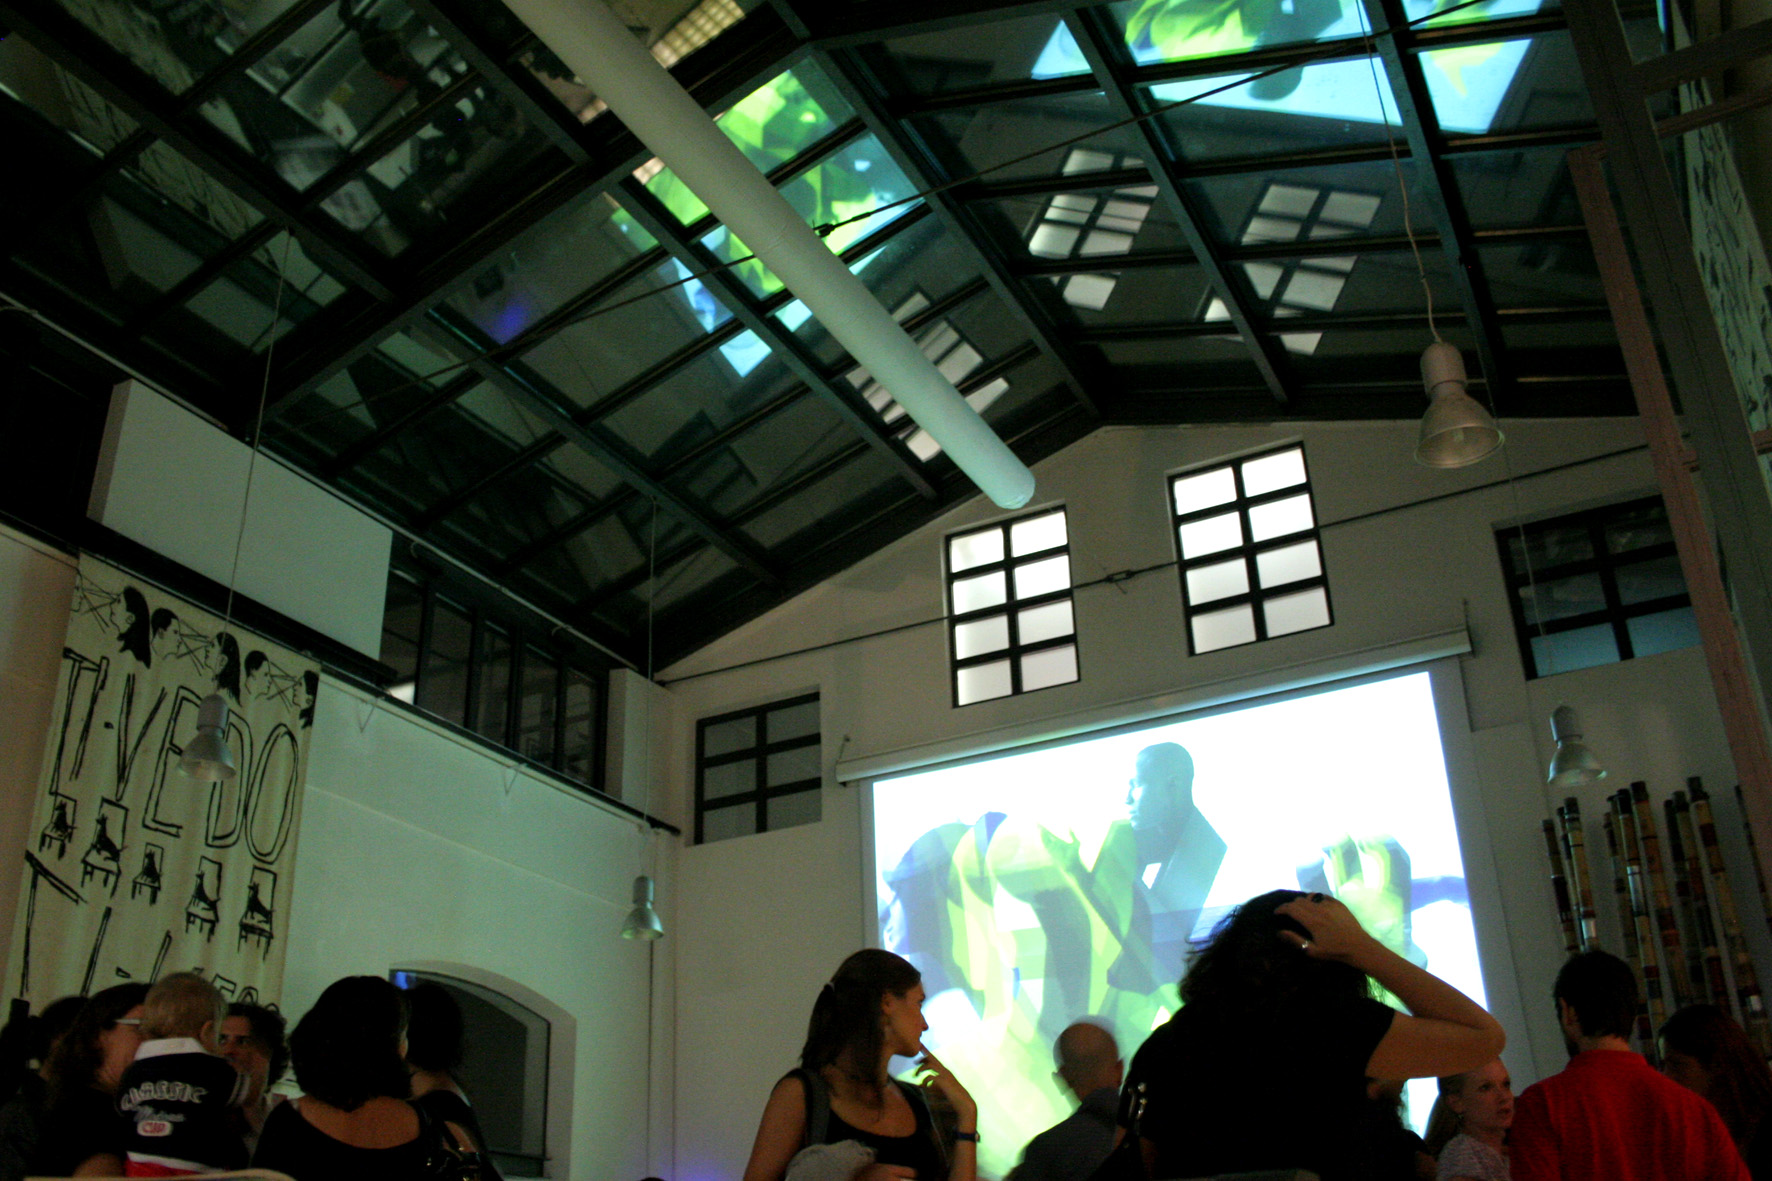 Artribune e Romaeuropa - Try the impossible party 13